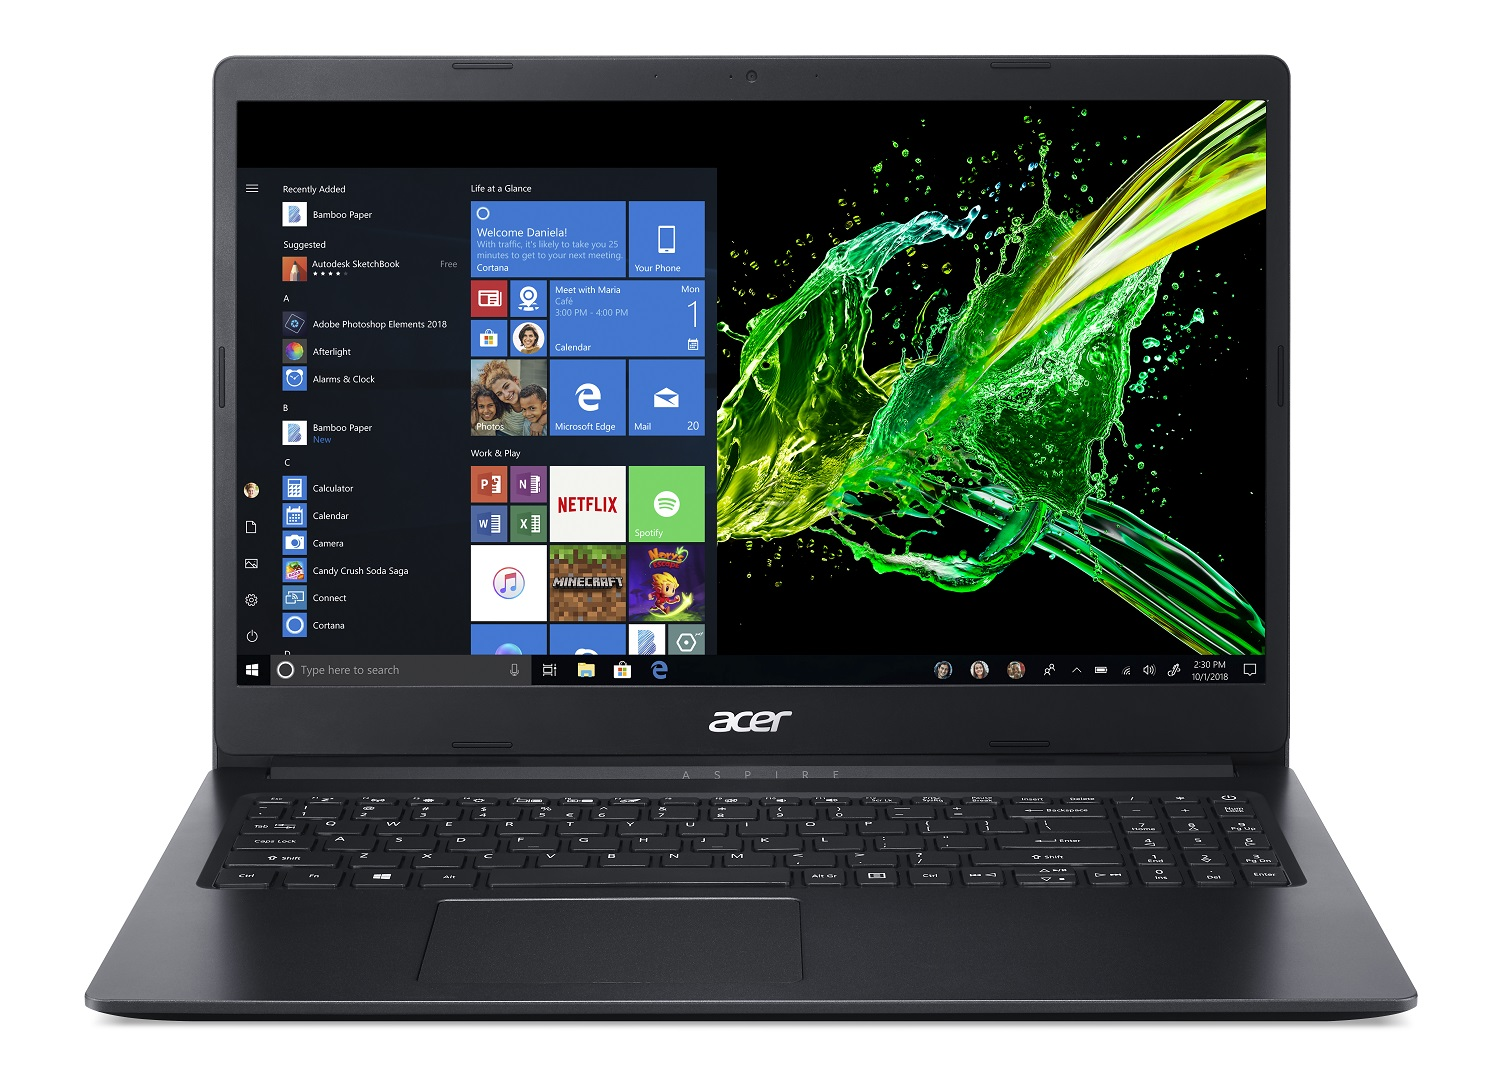 "Acer Aspire 1, 15.6"" HD Screen, Intel Celeron N4000, 4GB DDR4, 64GB eMMC, Windows 10 in S mode, A115-31-C23T - Walmart.com"